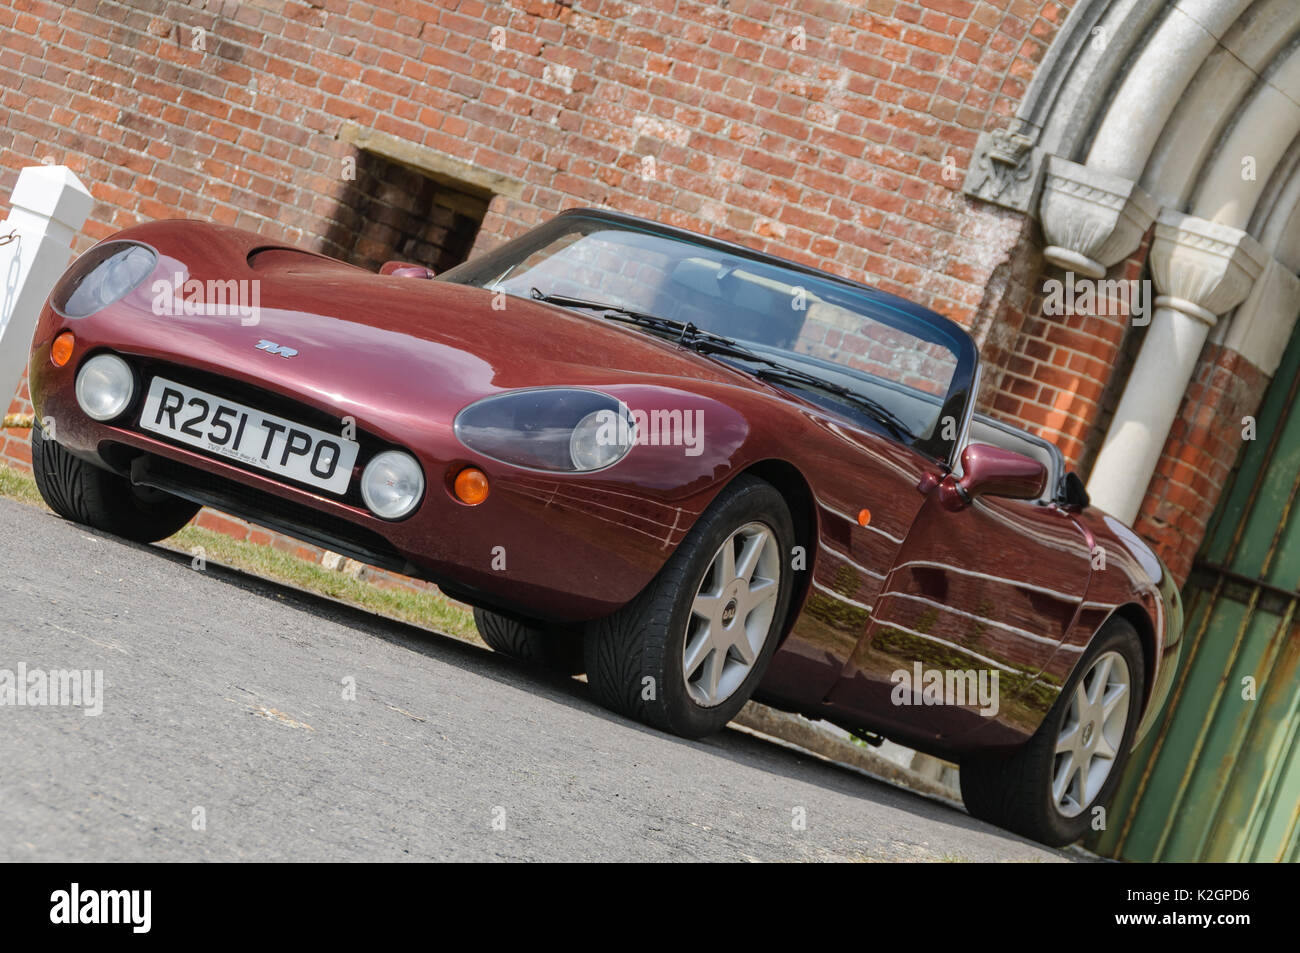 TVR Griffith Classic Sports Car - Stock Image